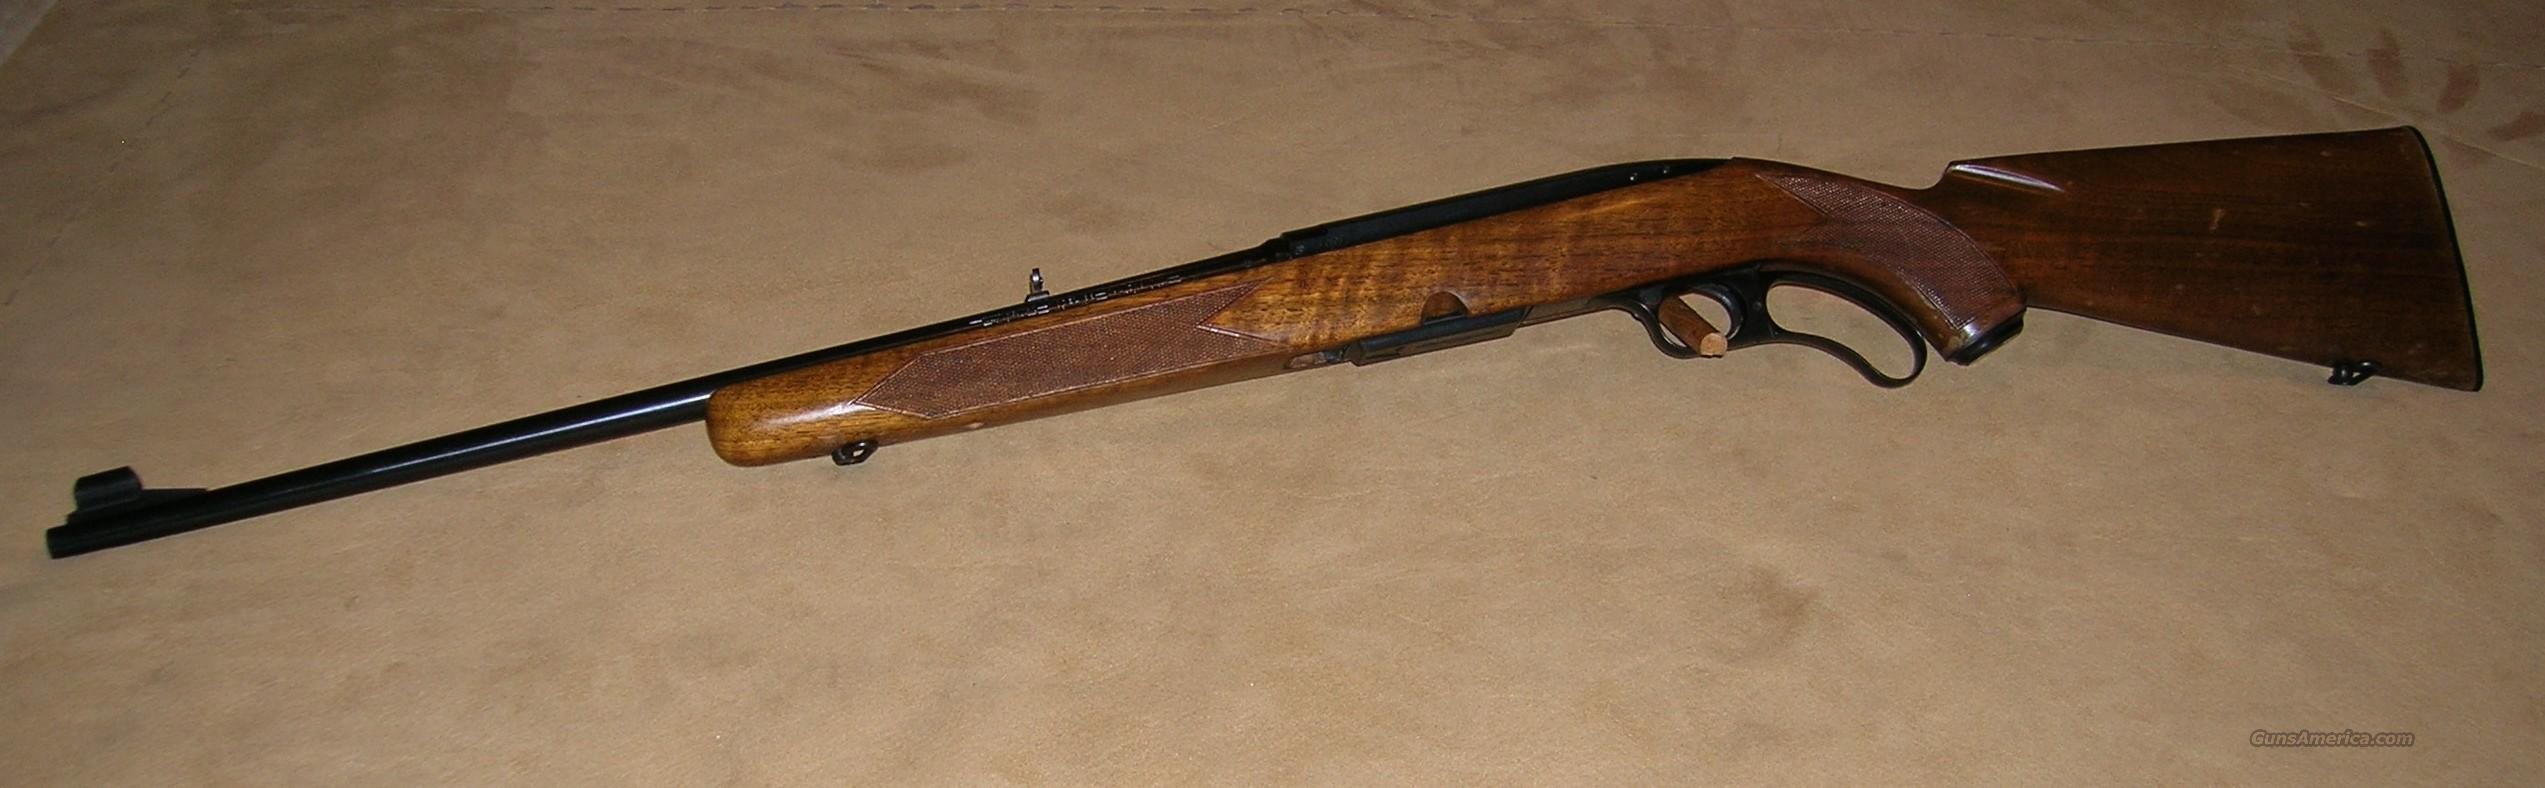 1955 Winchester Model 88  Guns > Rifles > Winchester Rifles - Modern Lever > Other Lever > Pre-64